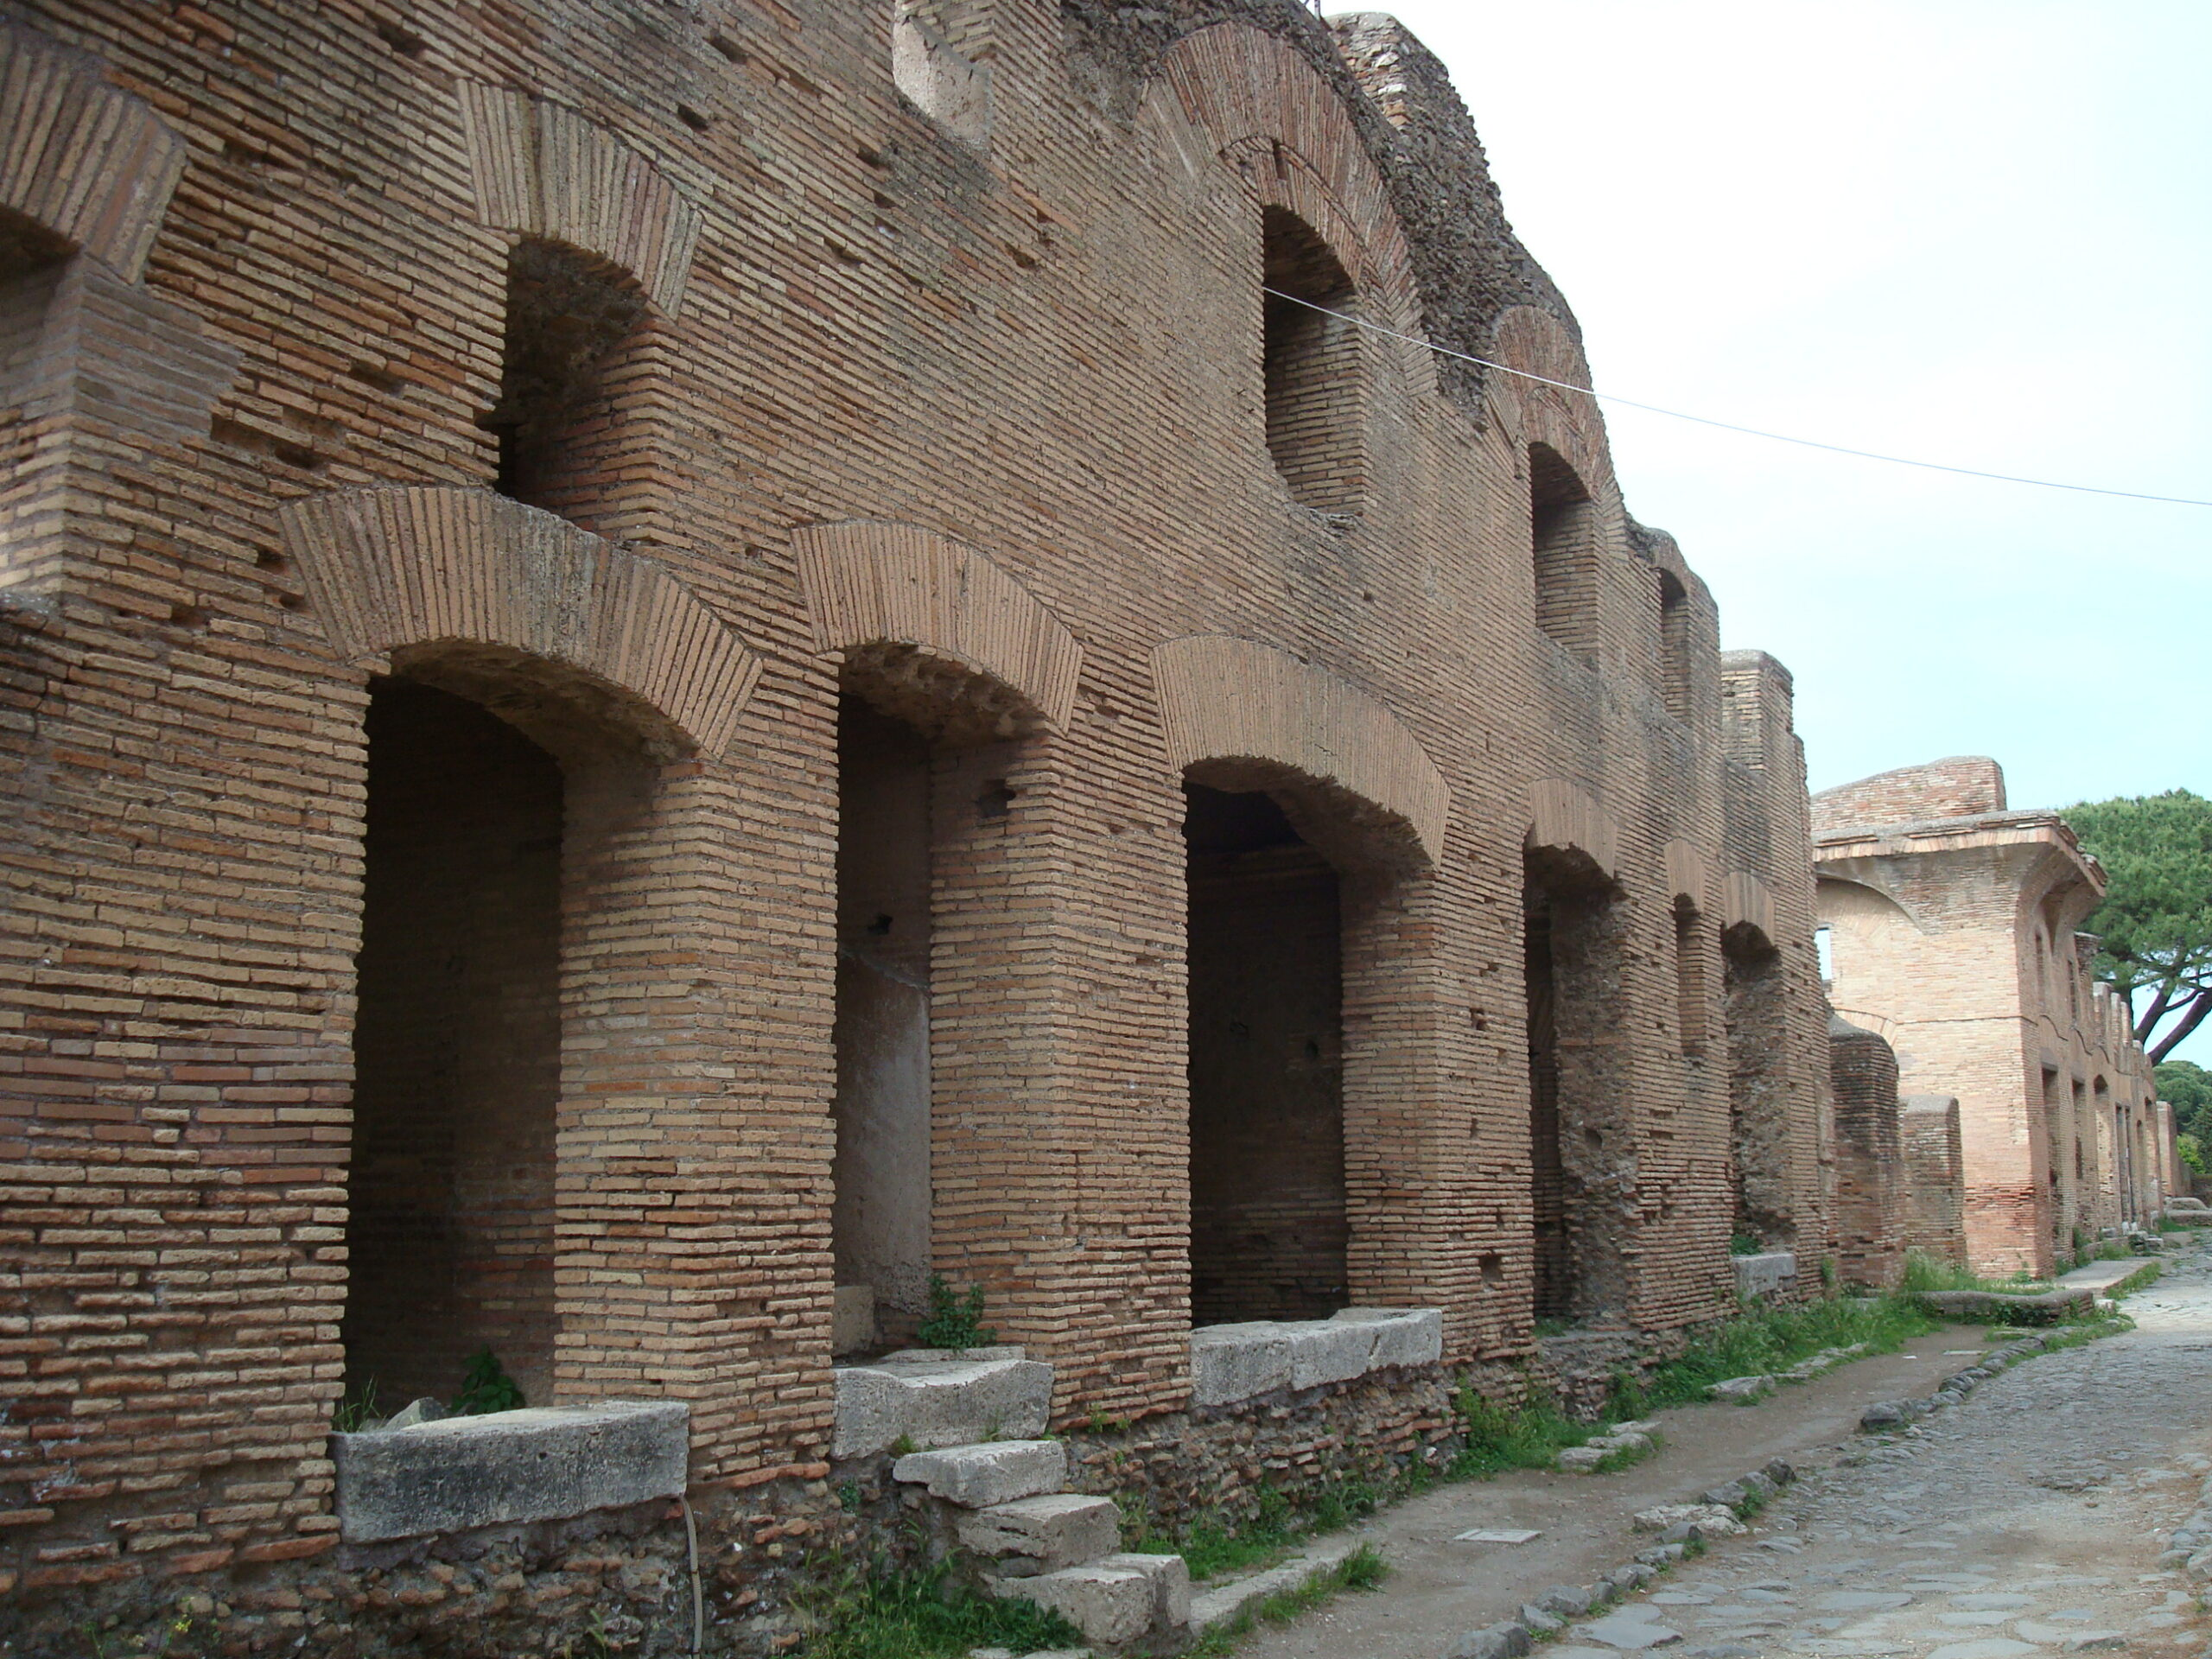 Ostia, Italy (Ostia Antica) – Chapter 7: Roman Construction